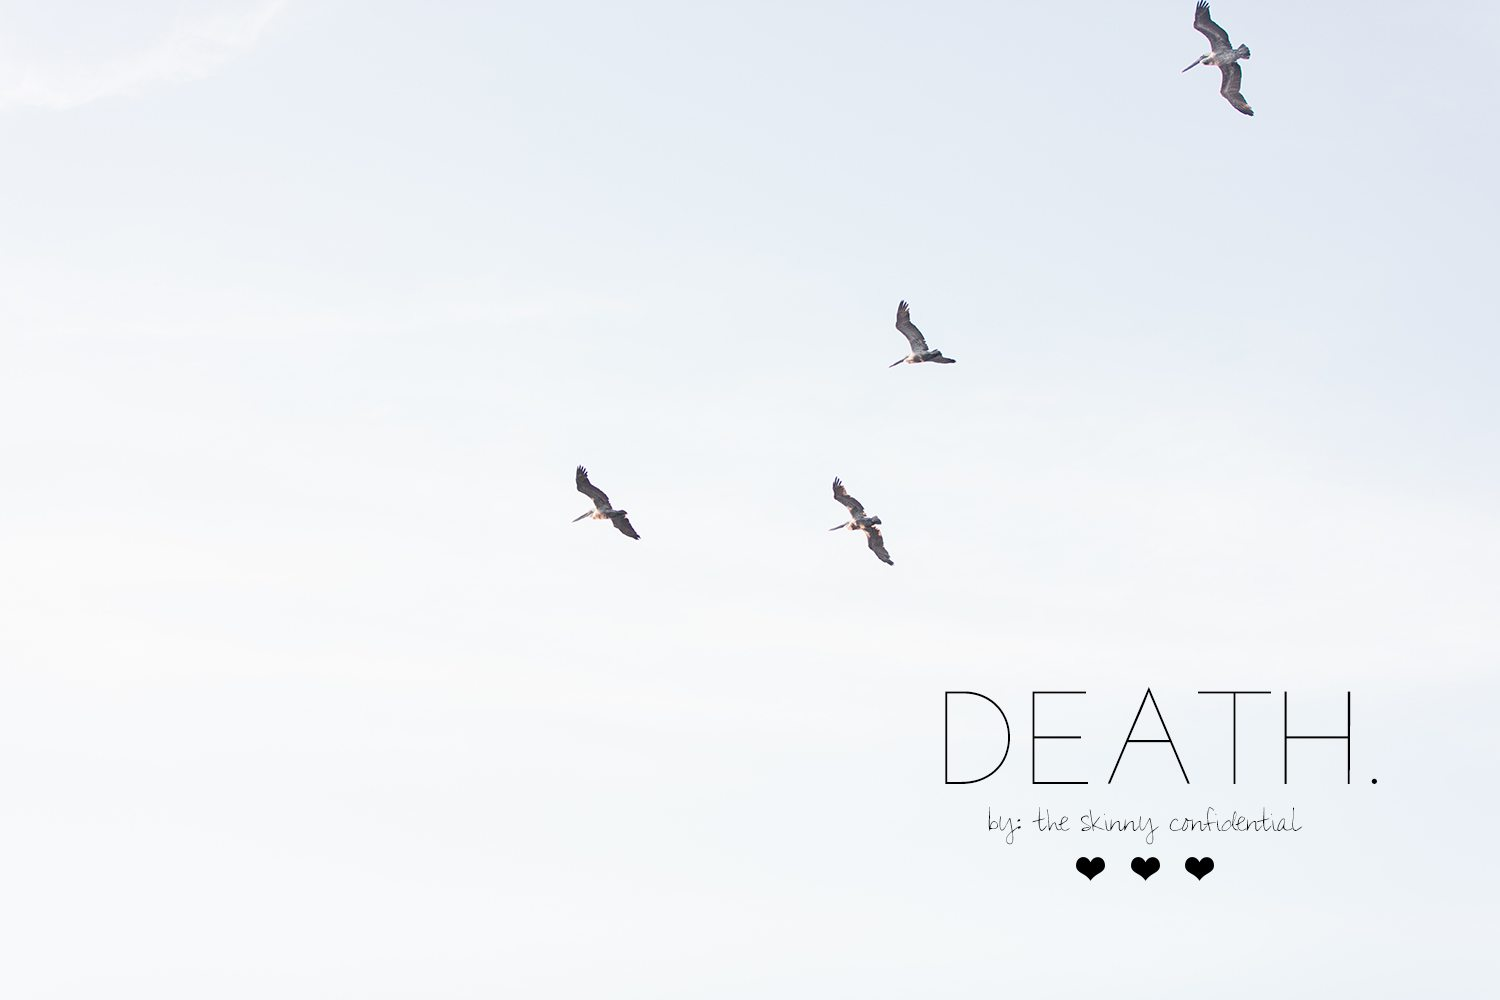 death-the-skinny-confidential-2